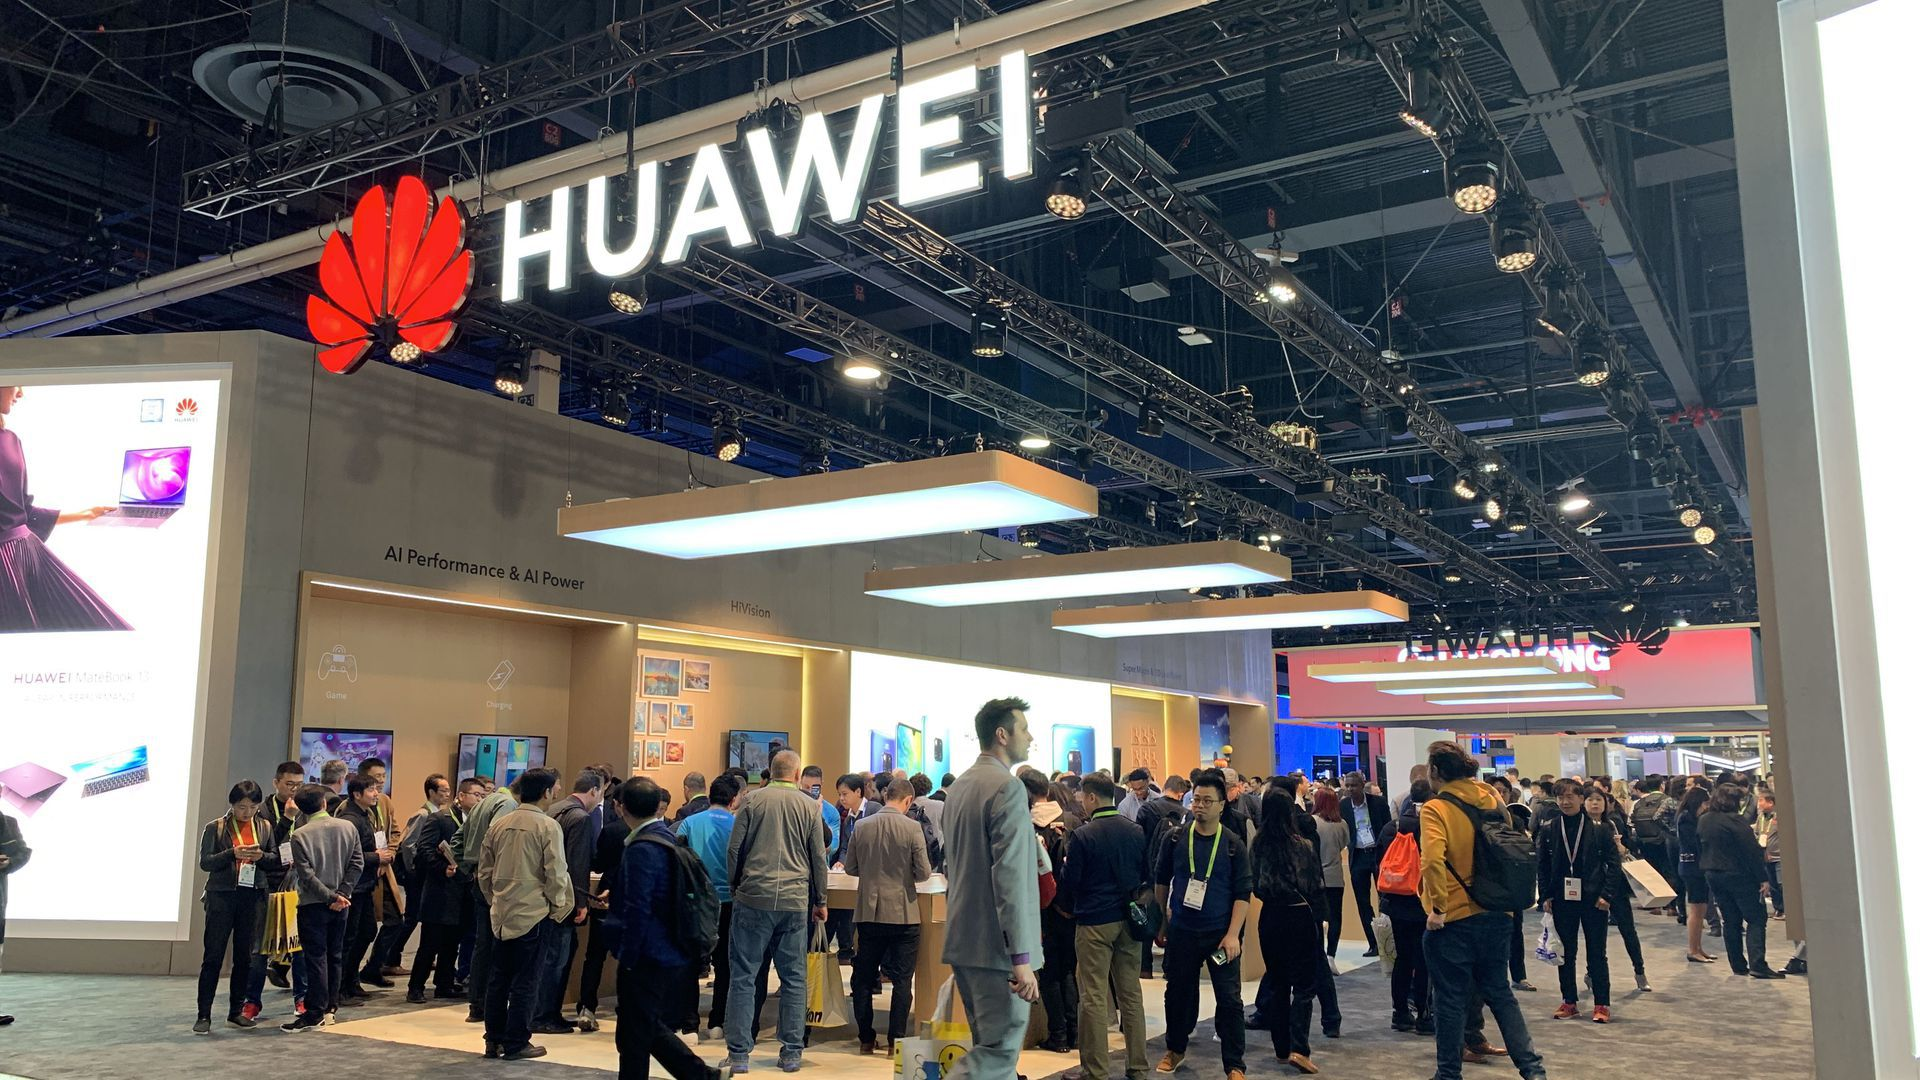 Huawei's booth at CES